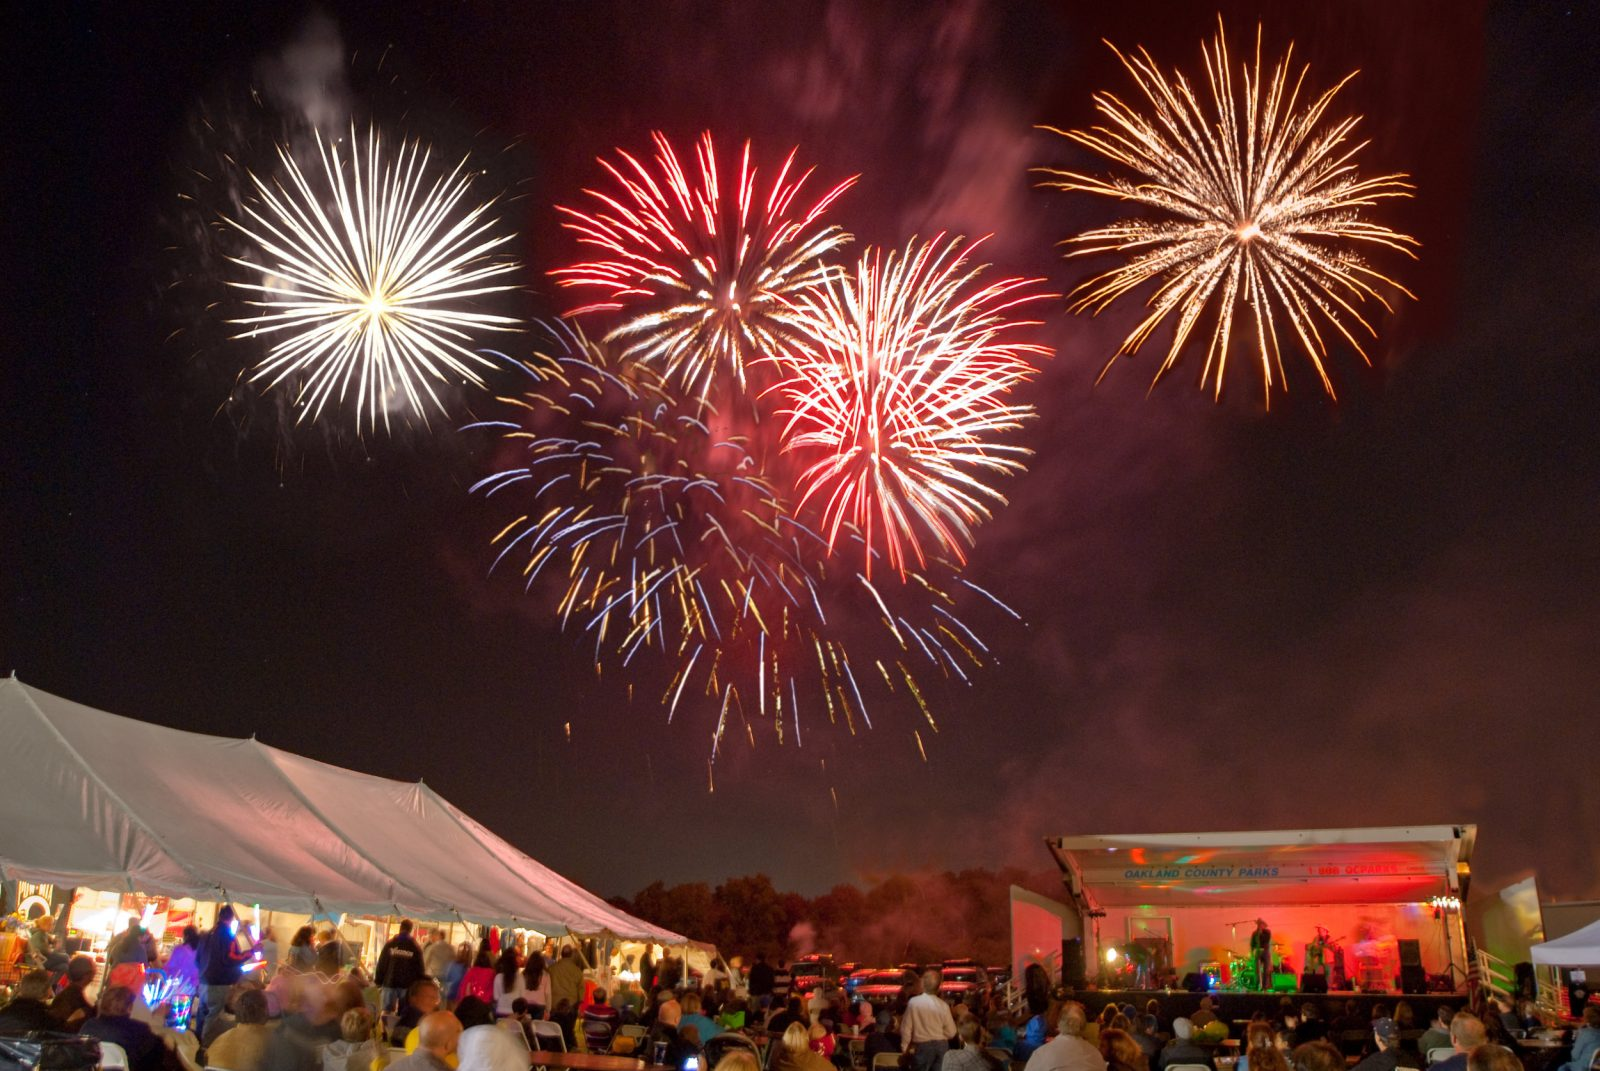 Enjoy the fireworks in Troy MI along with other annual events in the area like the daze festival